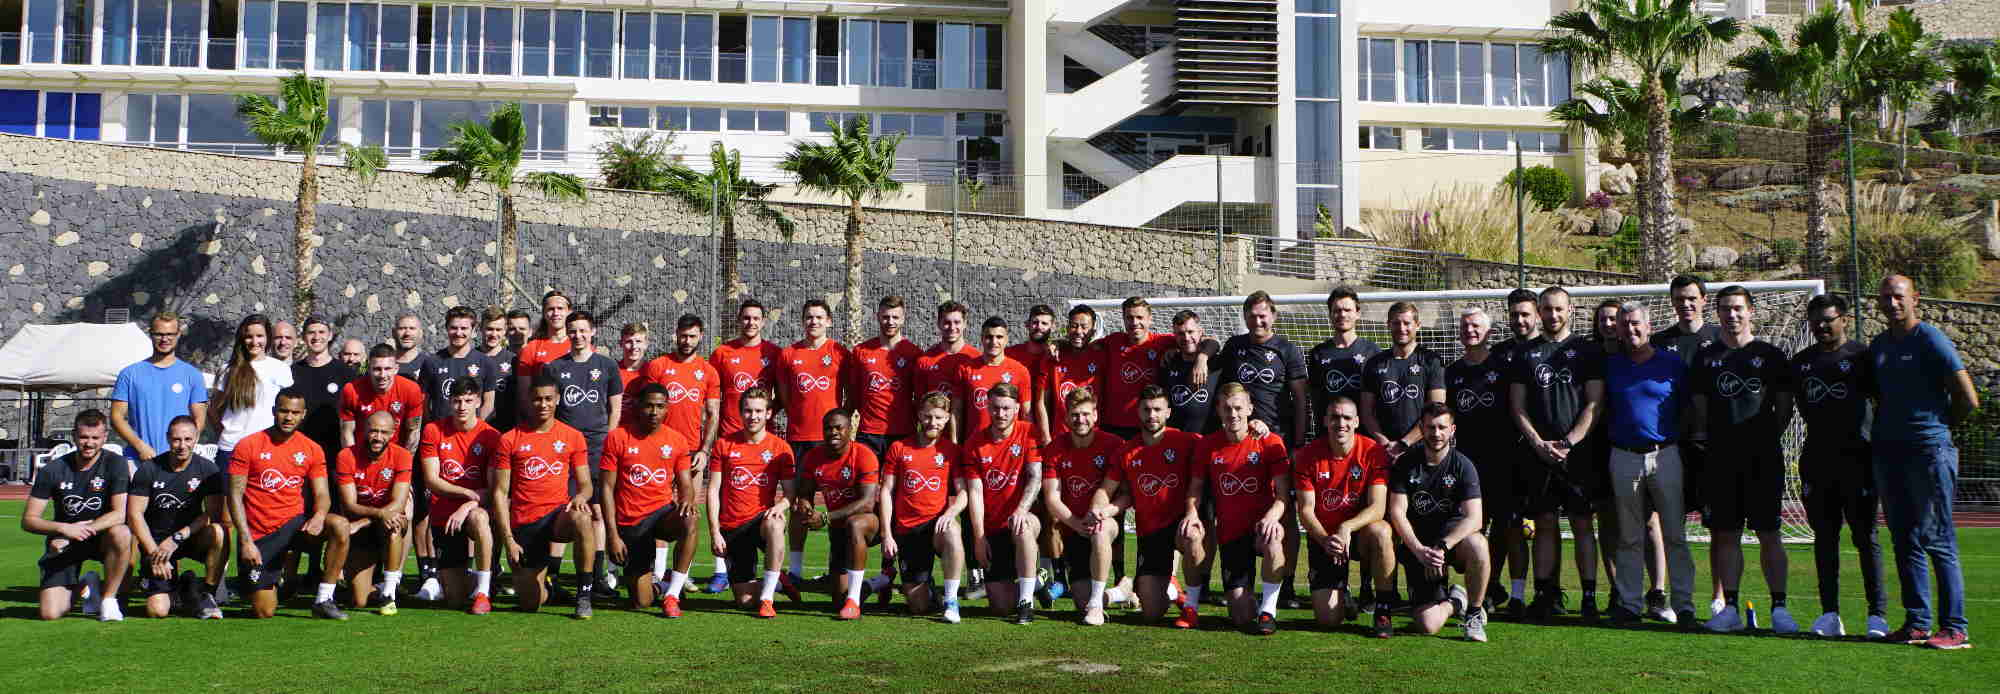 Southampton FC during their football training camp in the best sport resort Tenerife Top Training